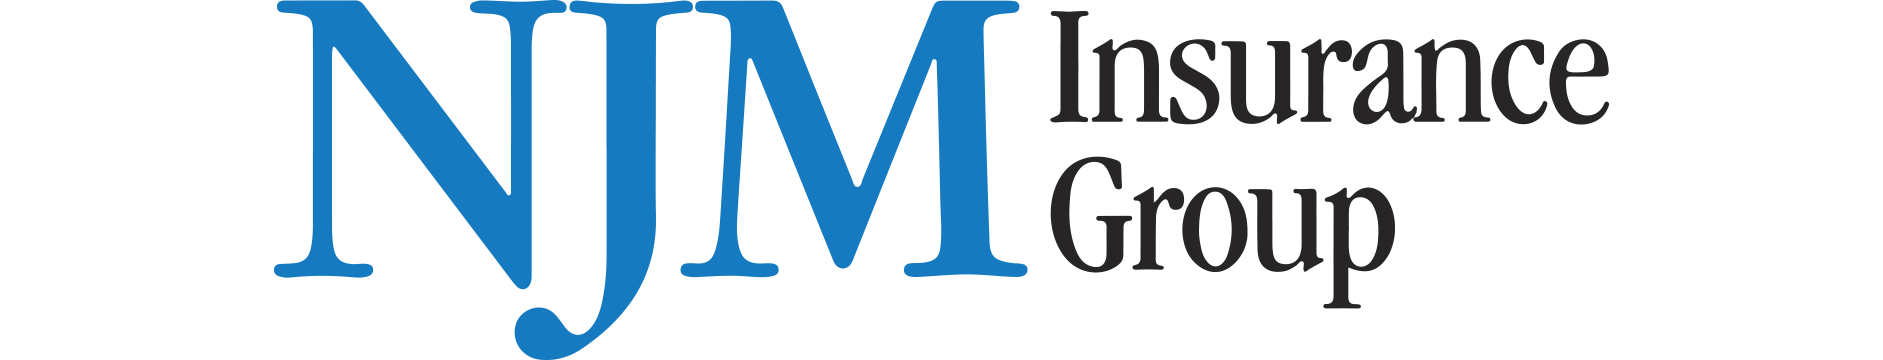 Safety Client - NJM Insurance Group